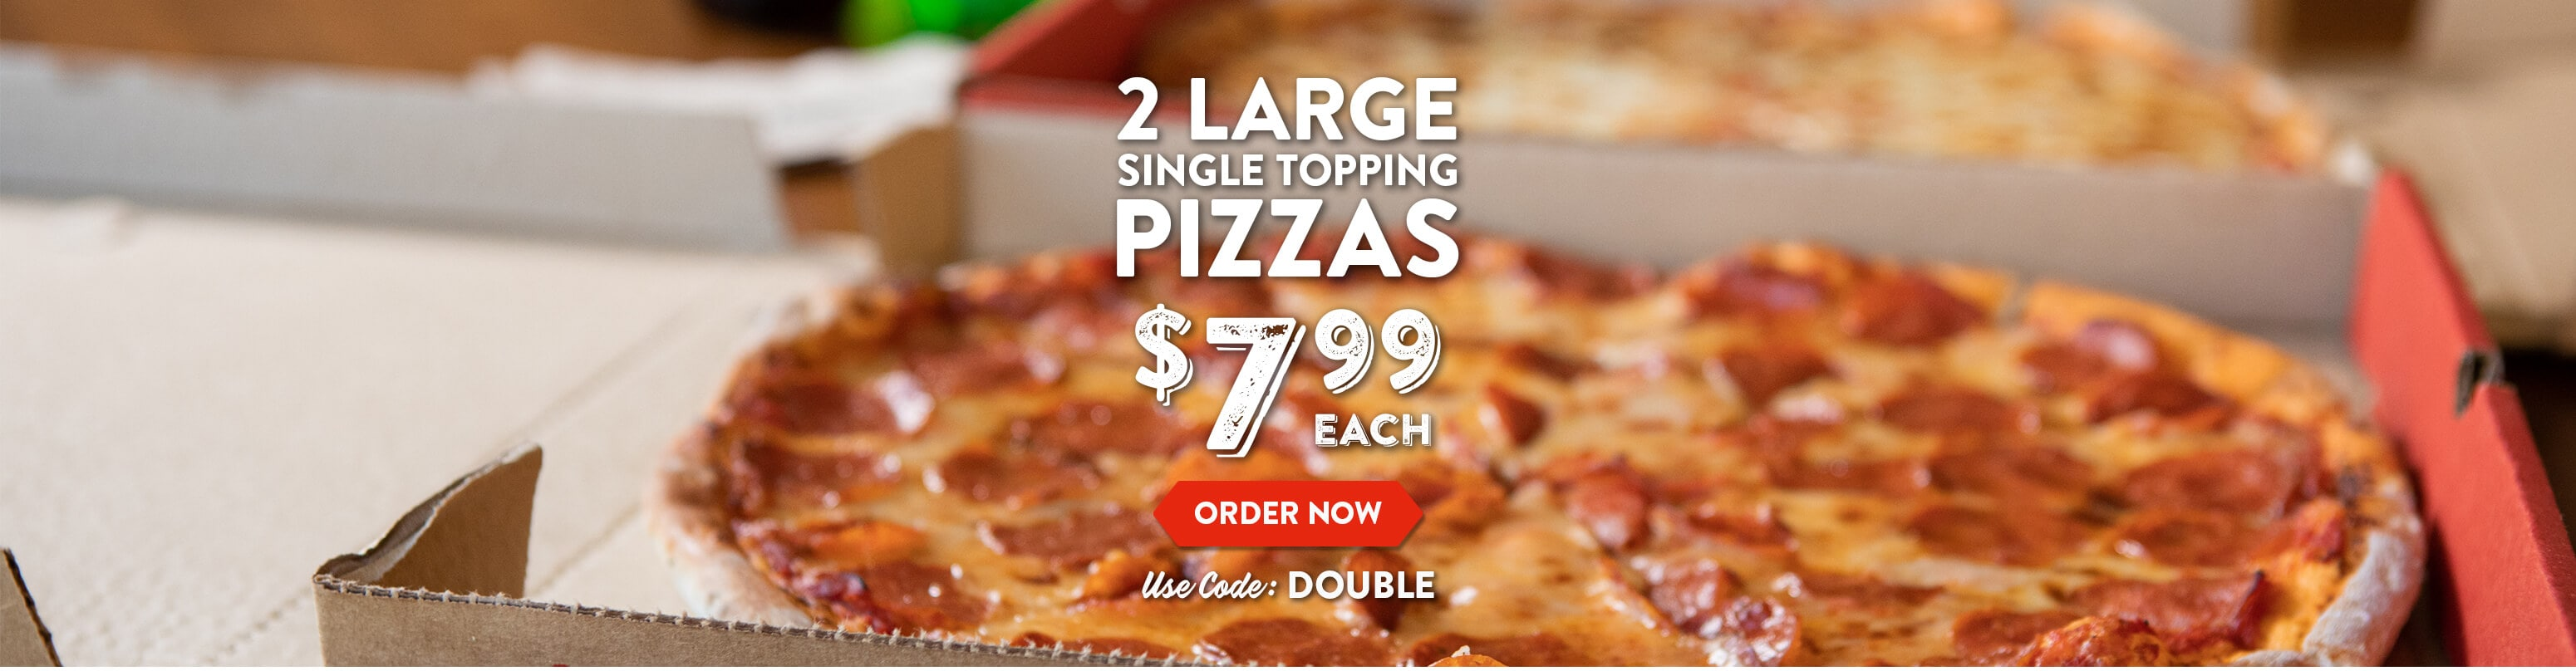 2 Large Single Topping Pizzas for $7.99 each with code DOUBLE! Order now here.